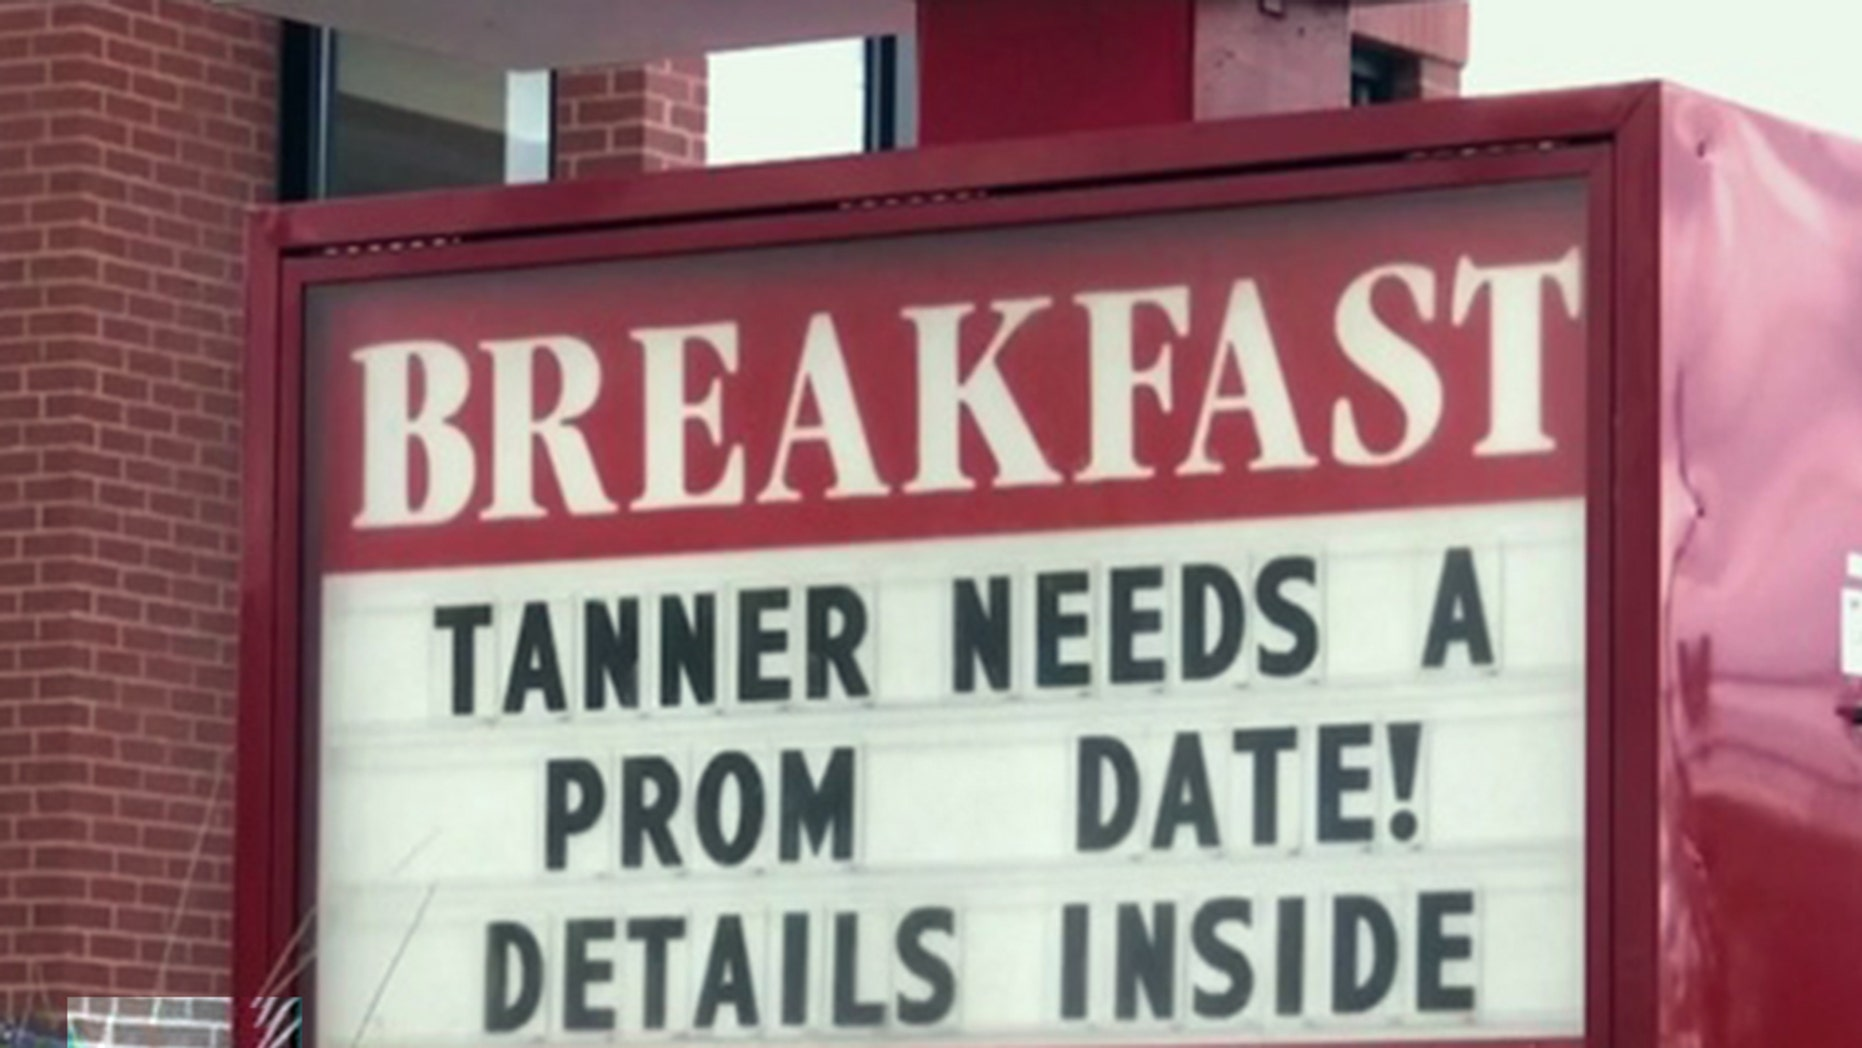 A Florida Chick-fil-A is helping a teen employee find a date for his senior prom.